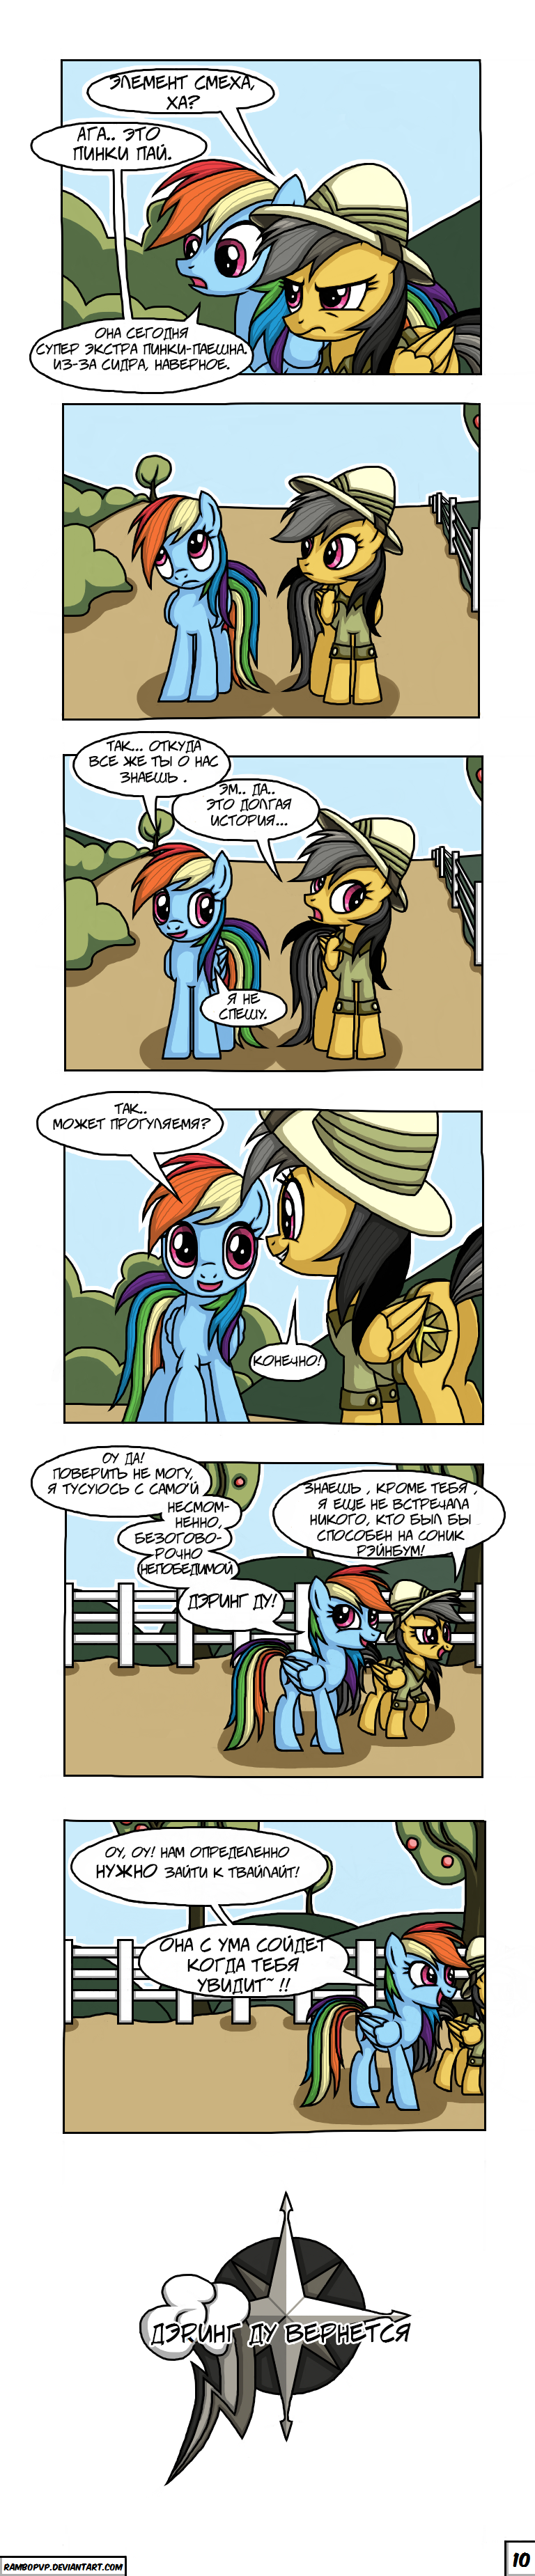 Rainbow dash and daring do comic